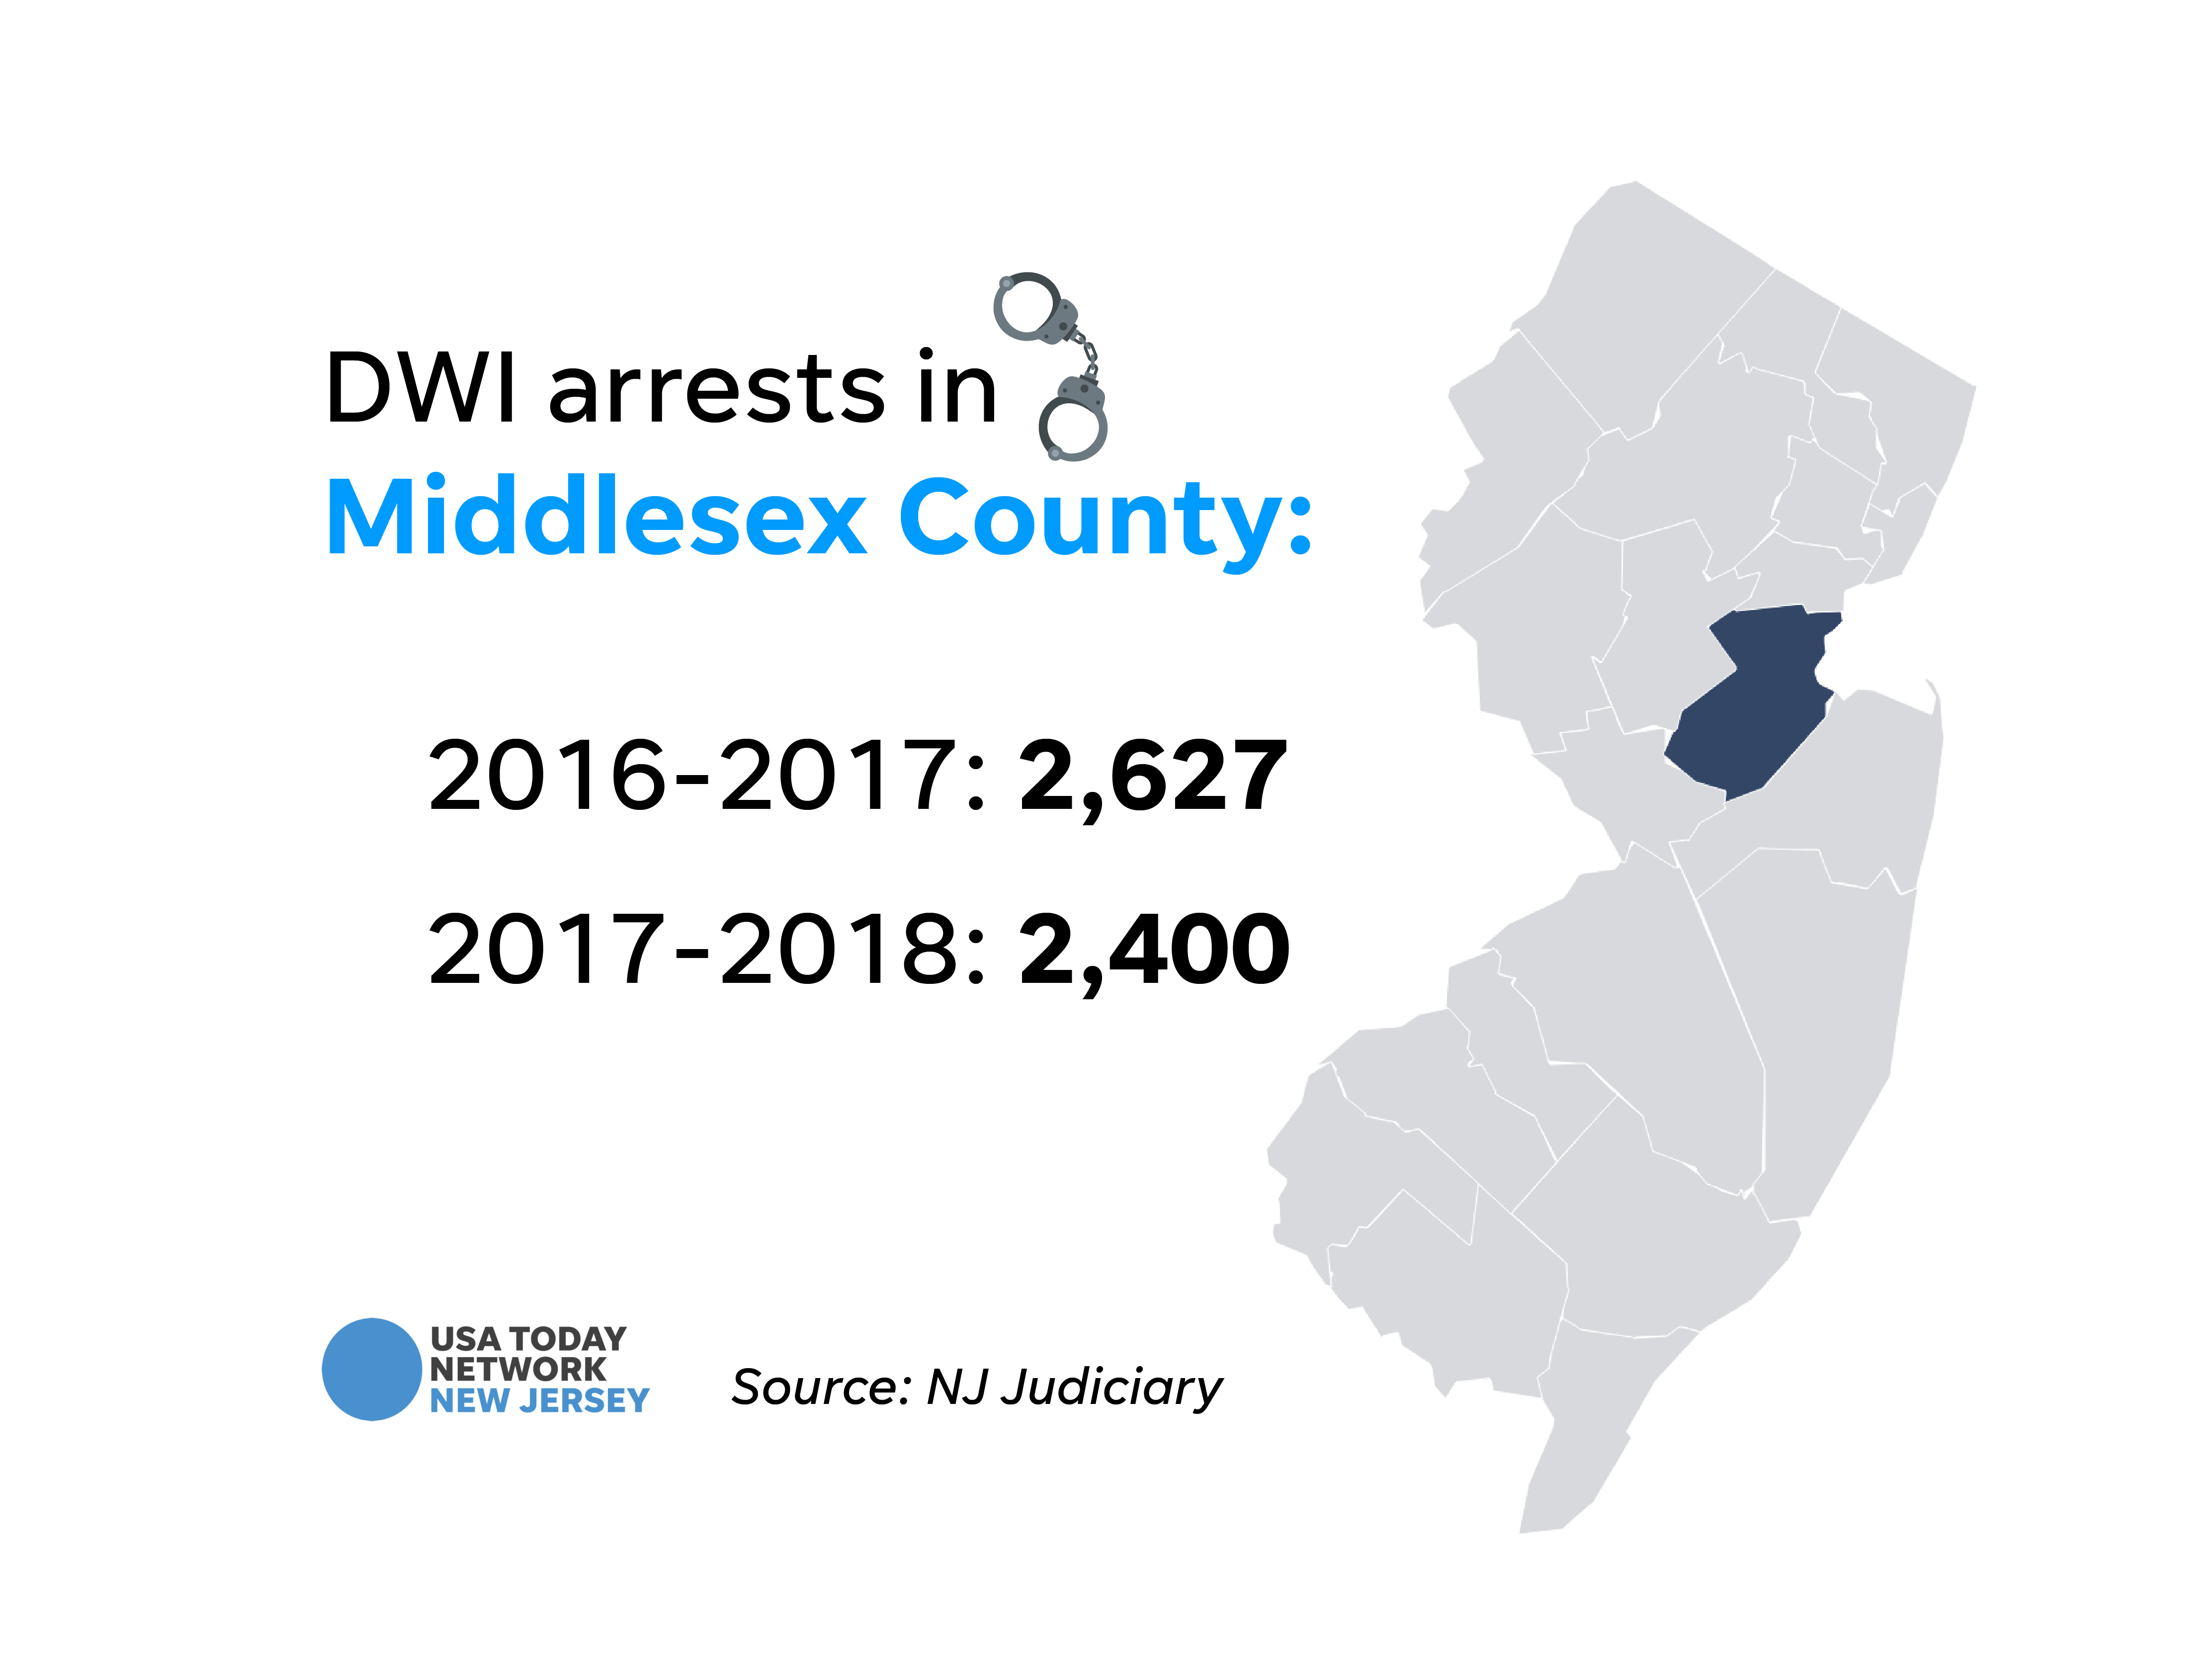 DWI arrests in Middlesex County.